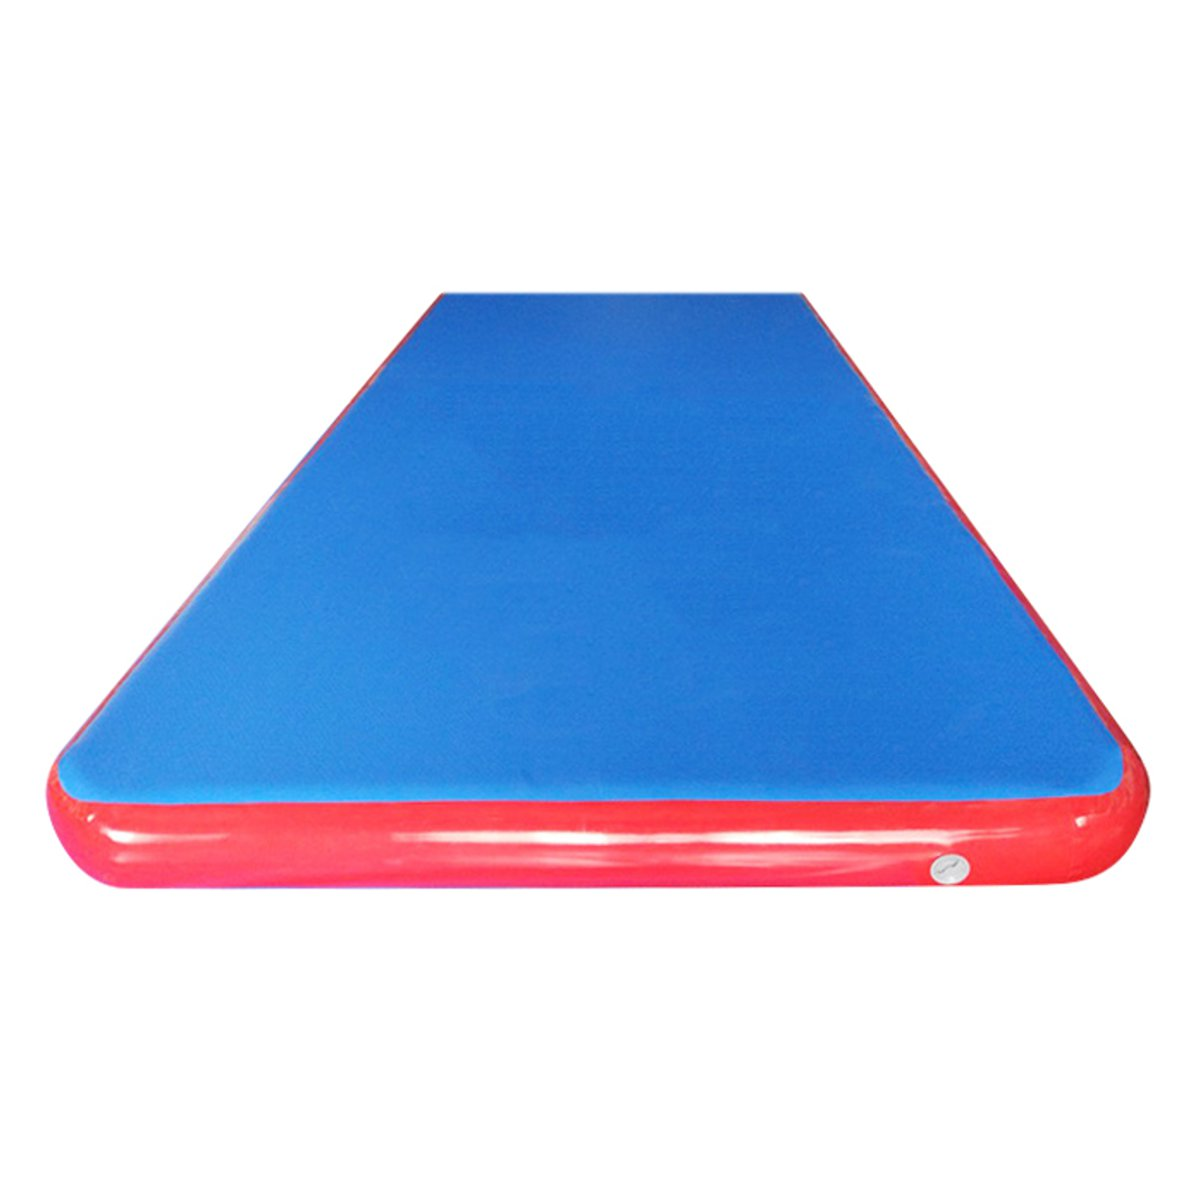 236.2x78.7x3.9inch Inflatable Gymnastics Training Mat Air Tumbling Track Floor Sports Protective Pad